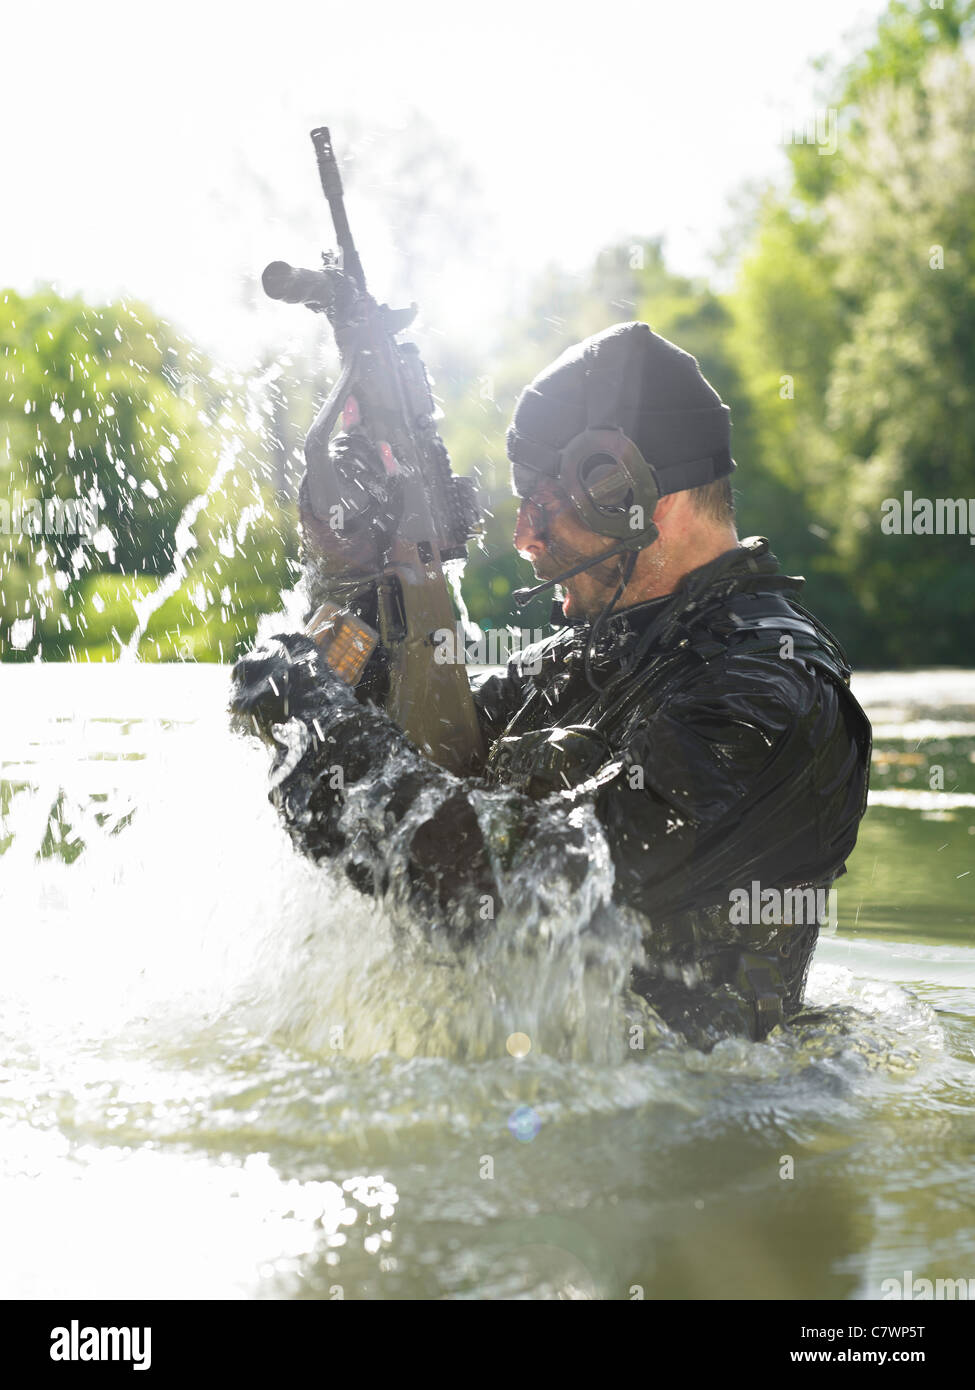 Special operations forces soldier emerges from water armed with a Steyr AUG assault rifle. - Stock Image